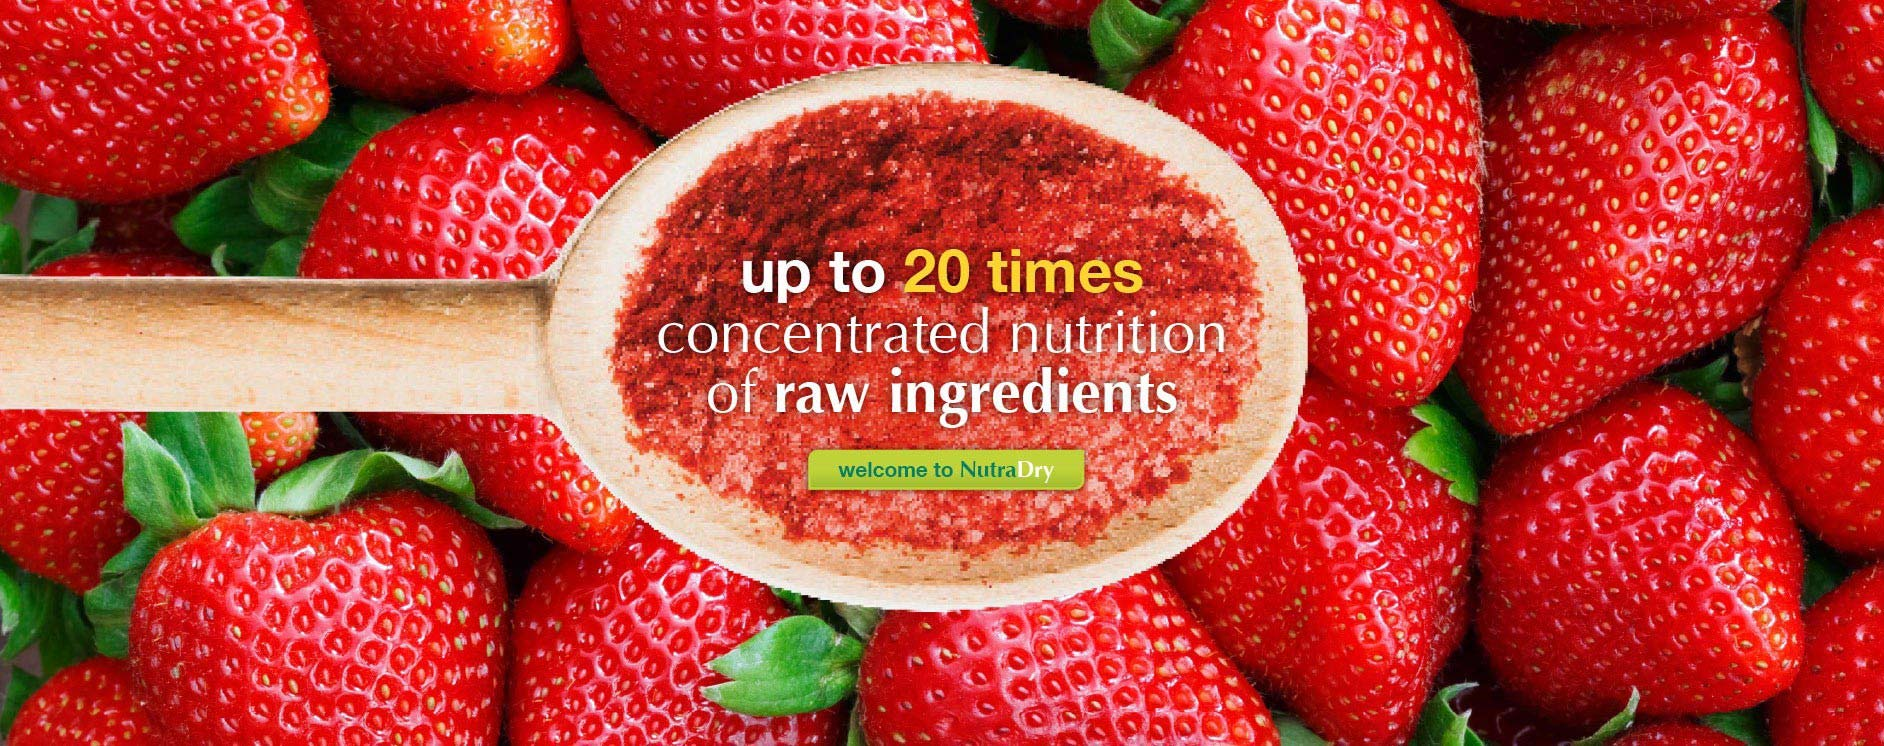 Welcome to Nutradry, concentrated fruit and vegetable powders